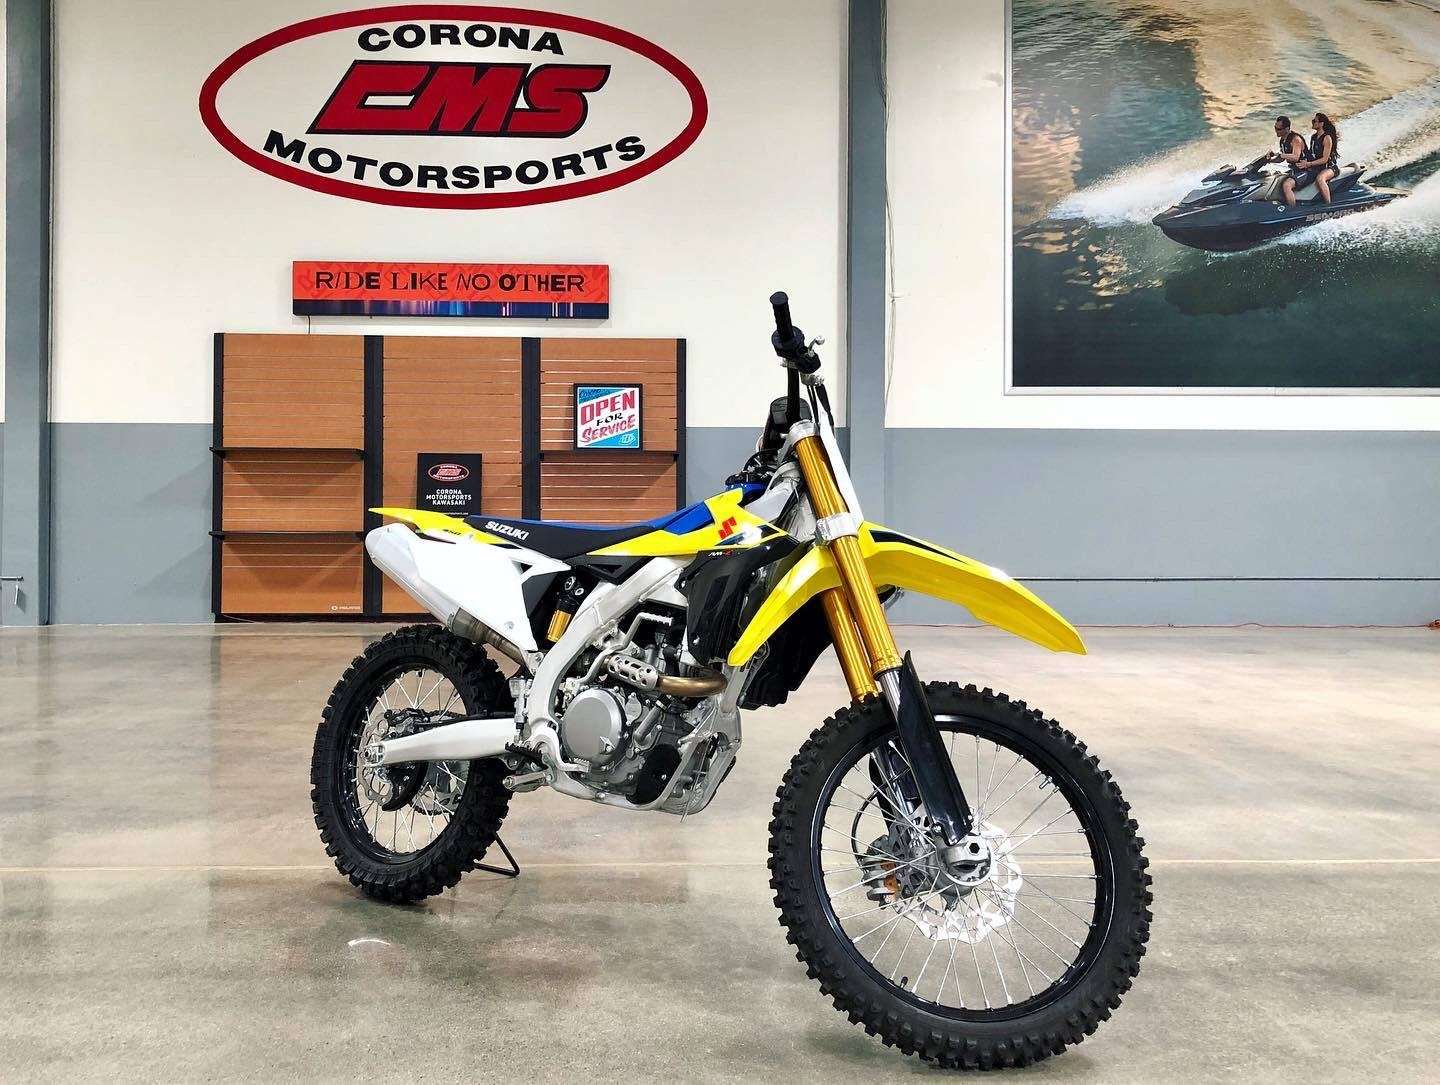 2020 Suzuki RM-Z450 in Corona, California - Photo 2